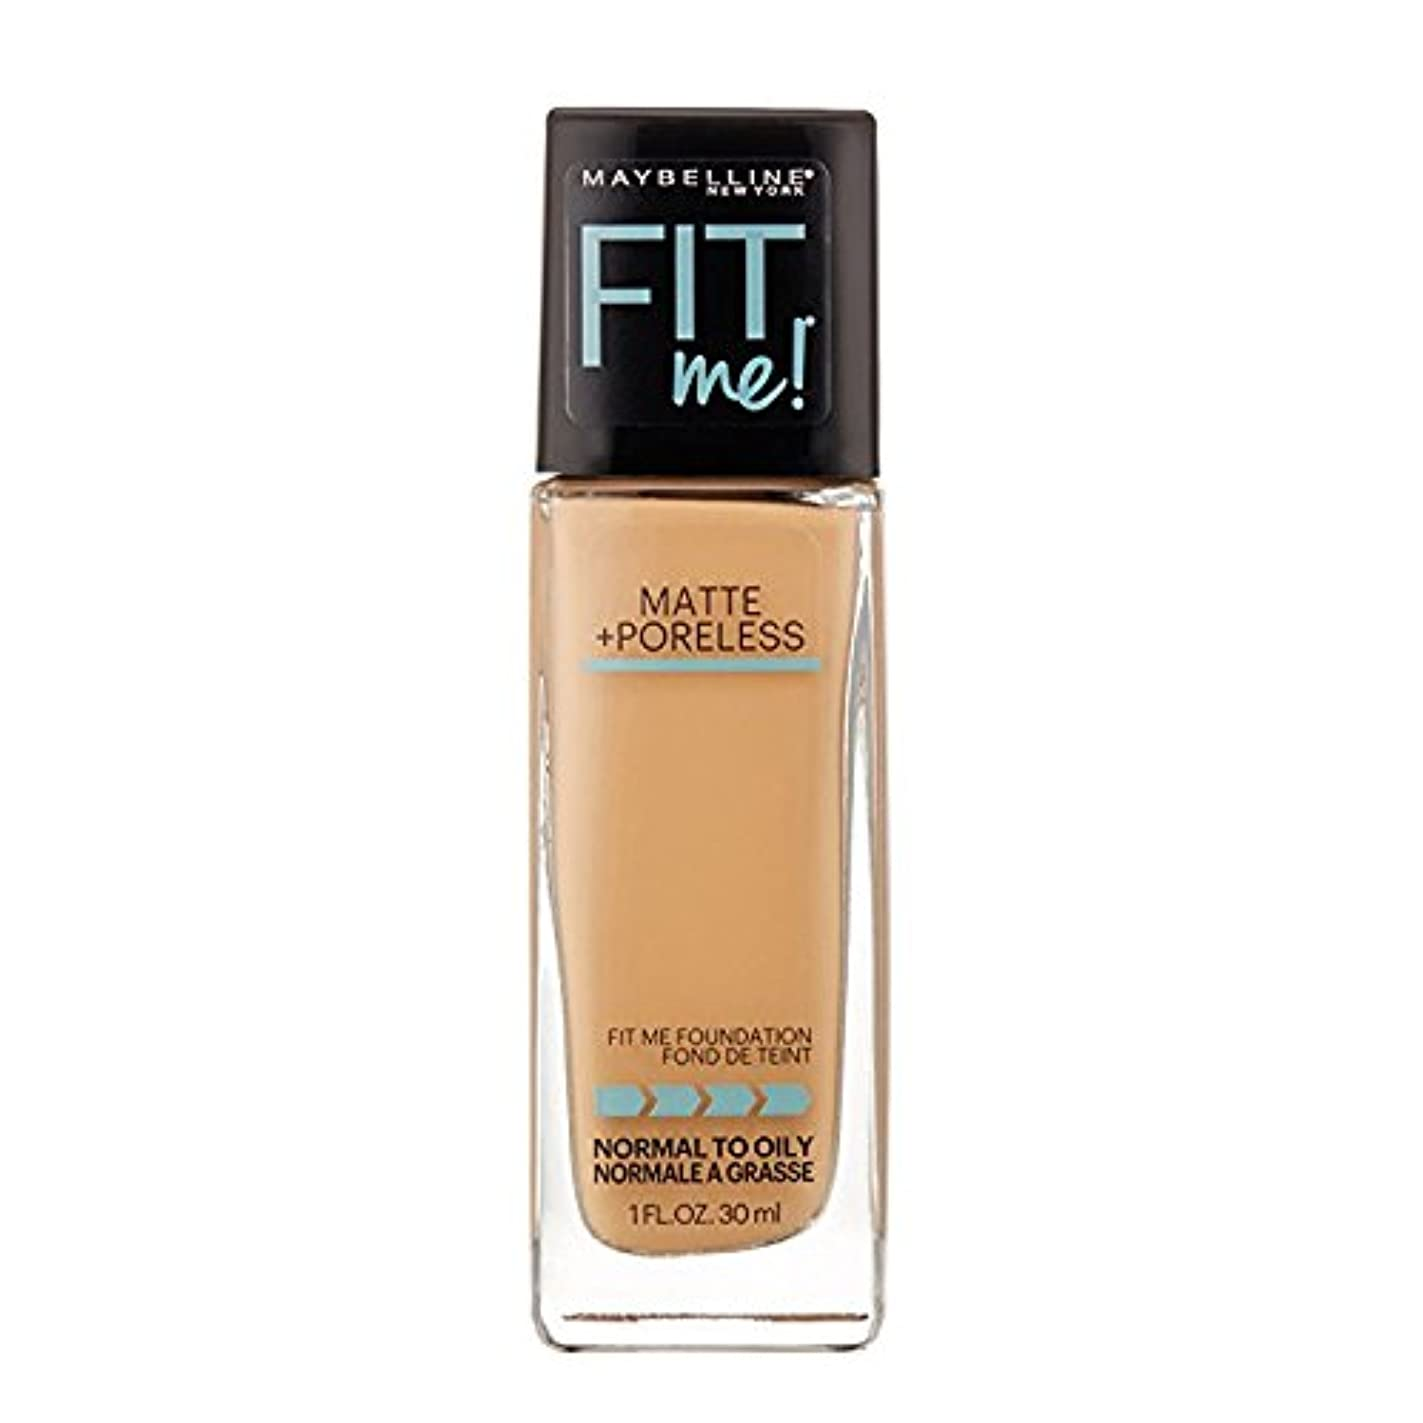 ベンチ嵐の憧れ(3 Pack) MAYBELLINE Fit Me! Matte + Poreless Foundation - Sun Beige 310 (並行輸入品)